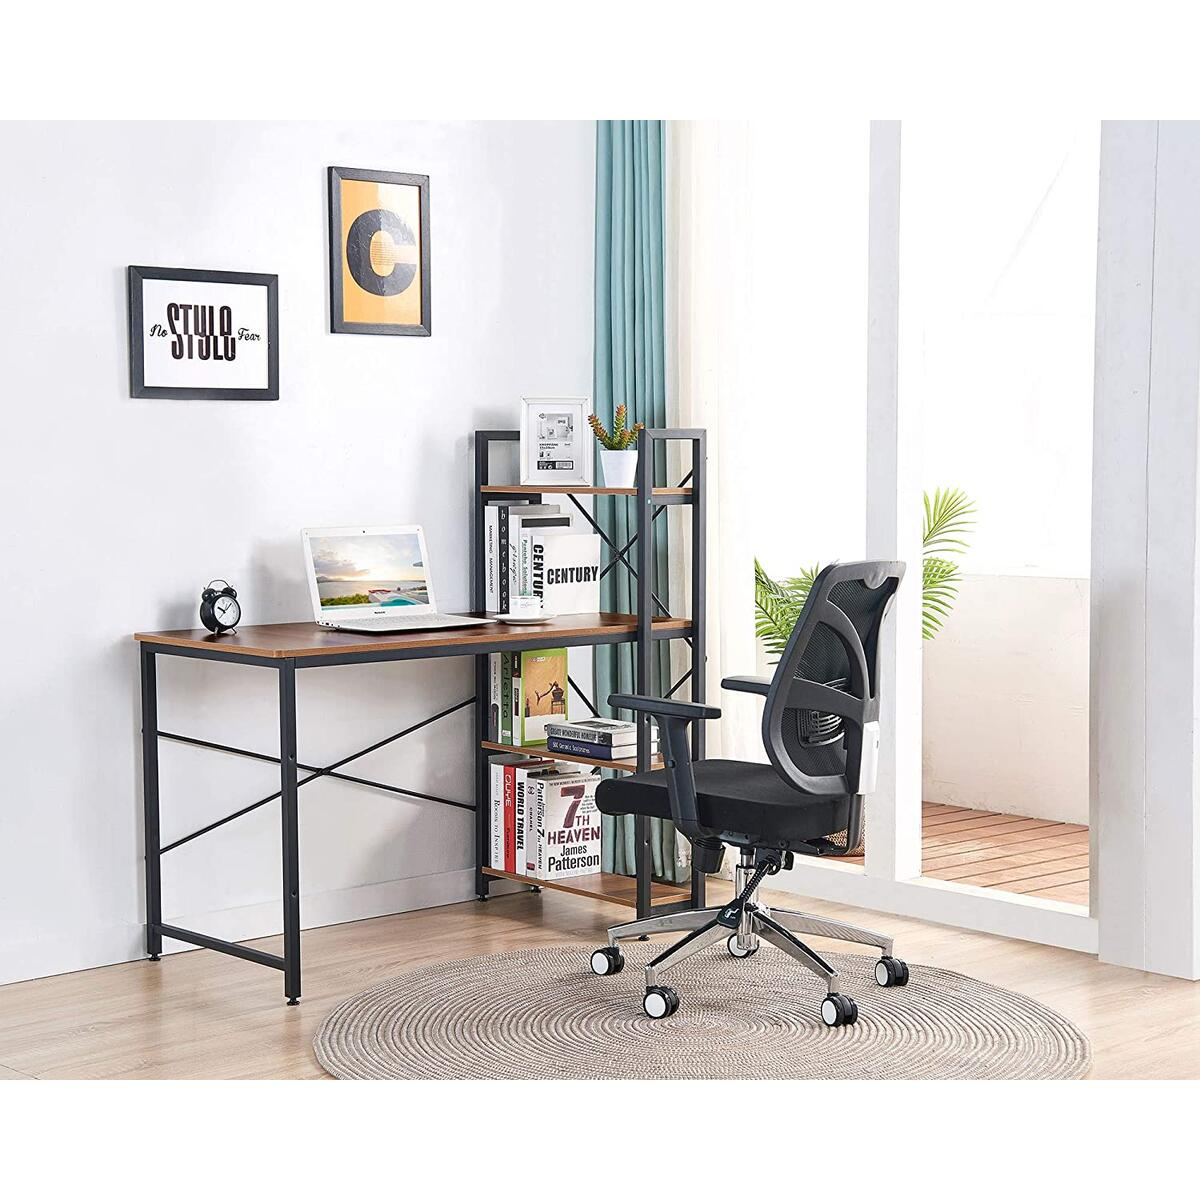 IBAMA Home Office Desk and Shelves, Study Writing Table with Bookshelves Ample Storage Space Modern Frame Compact Wood Desktop Home Work Office Workstation